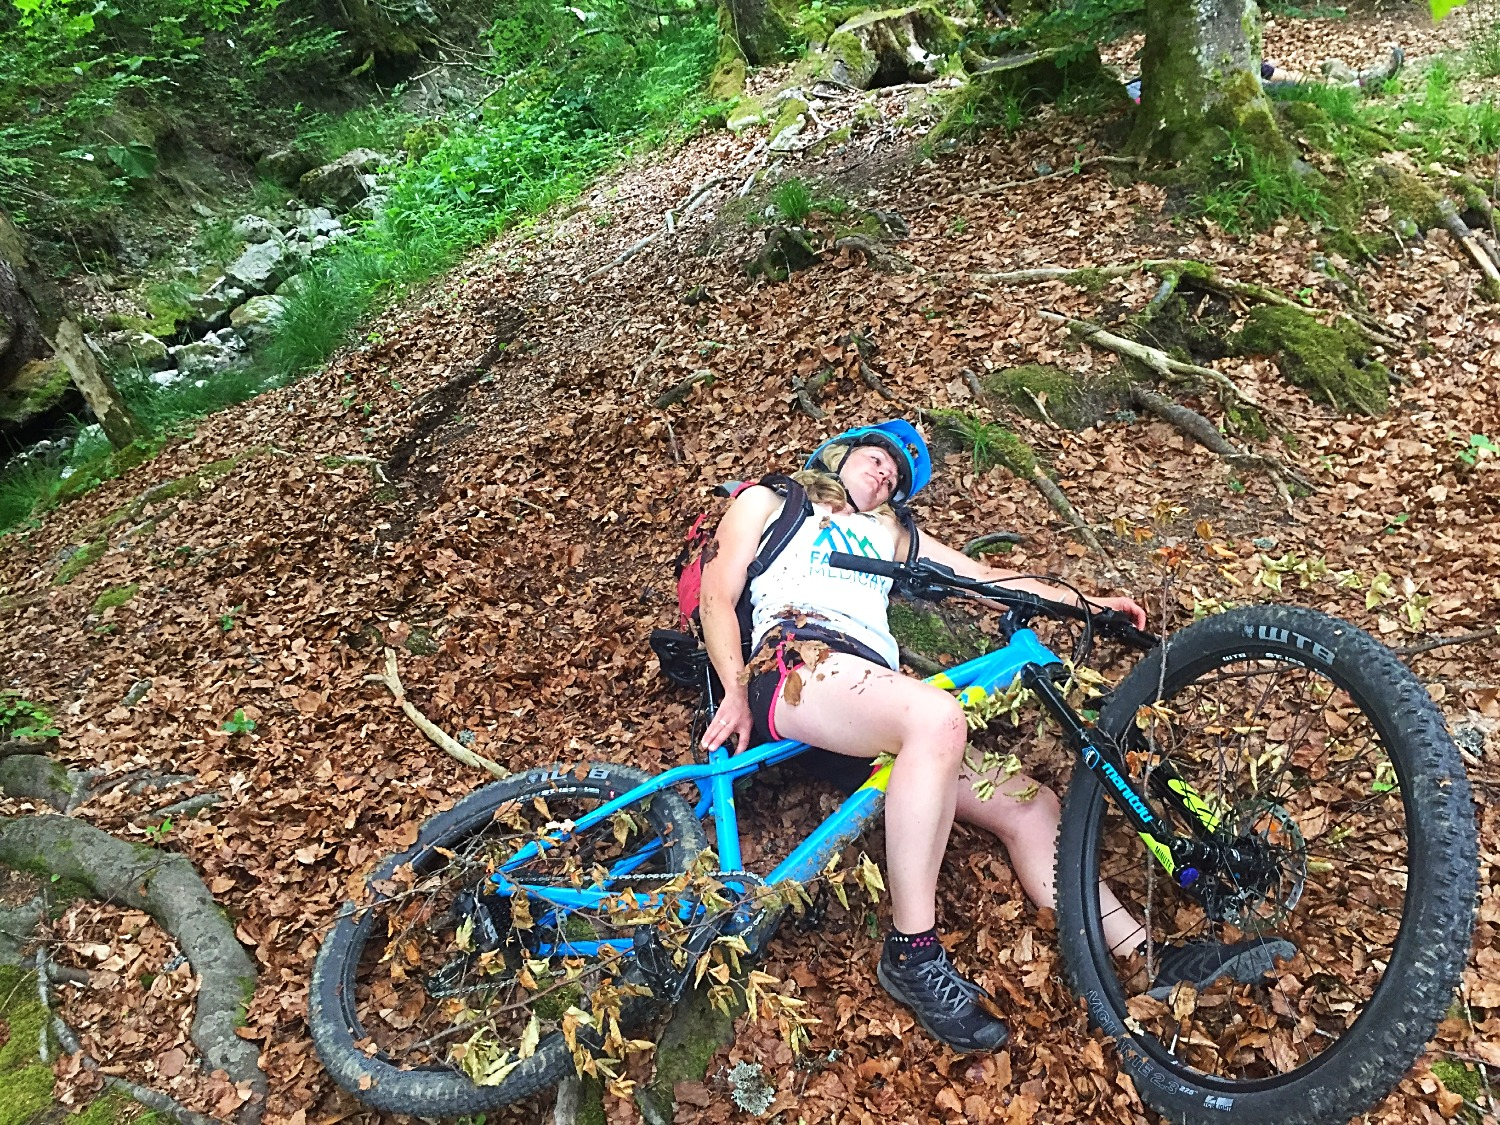 Mountain Biking accidents